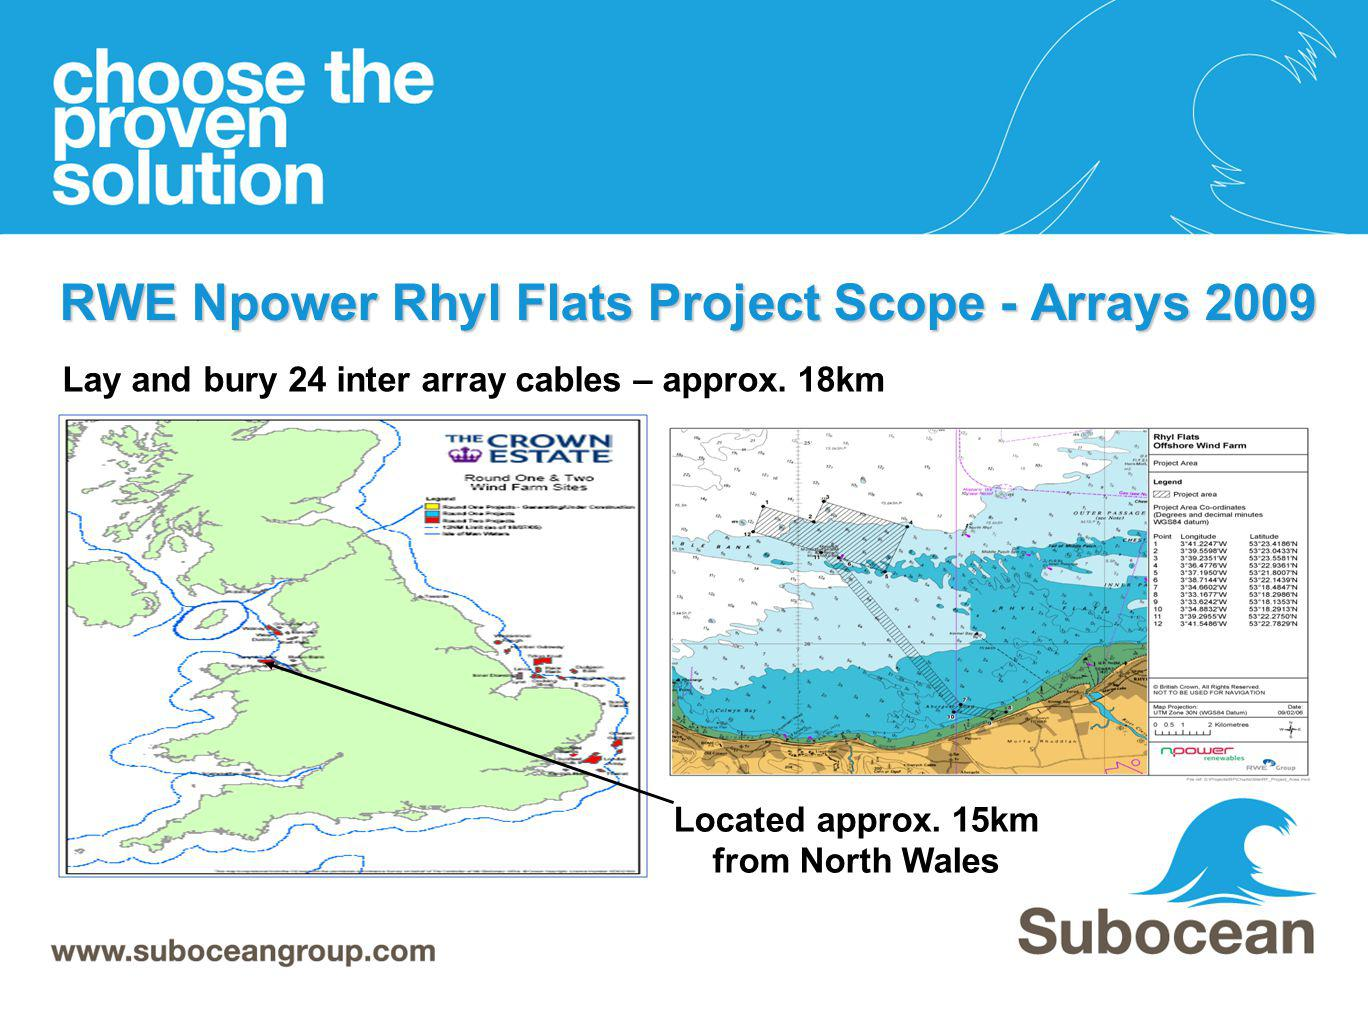 RWE Npower Rhyl Flats Project Scope - Arrays 2009 Located approx. 15km from North Wales Lay and bury 24 inter array cables – approx. 18km